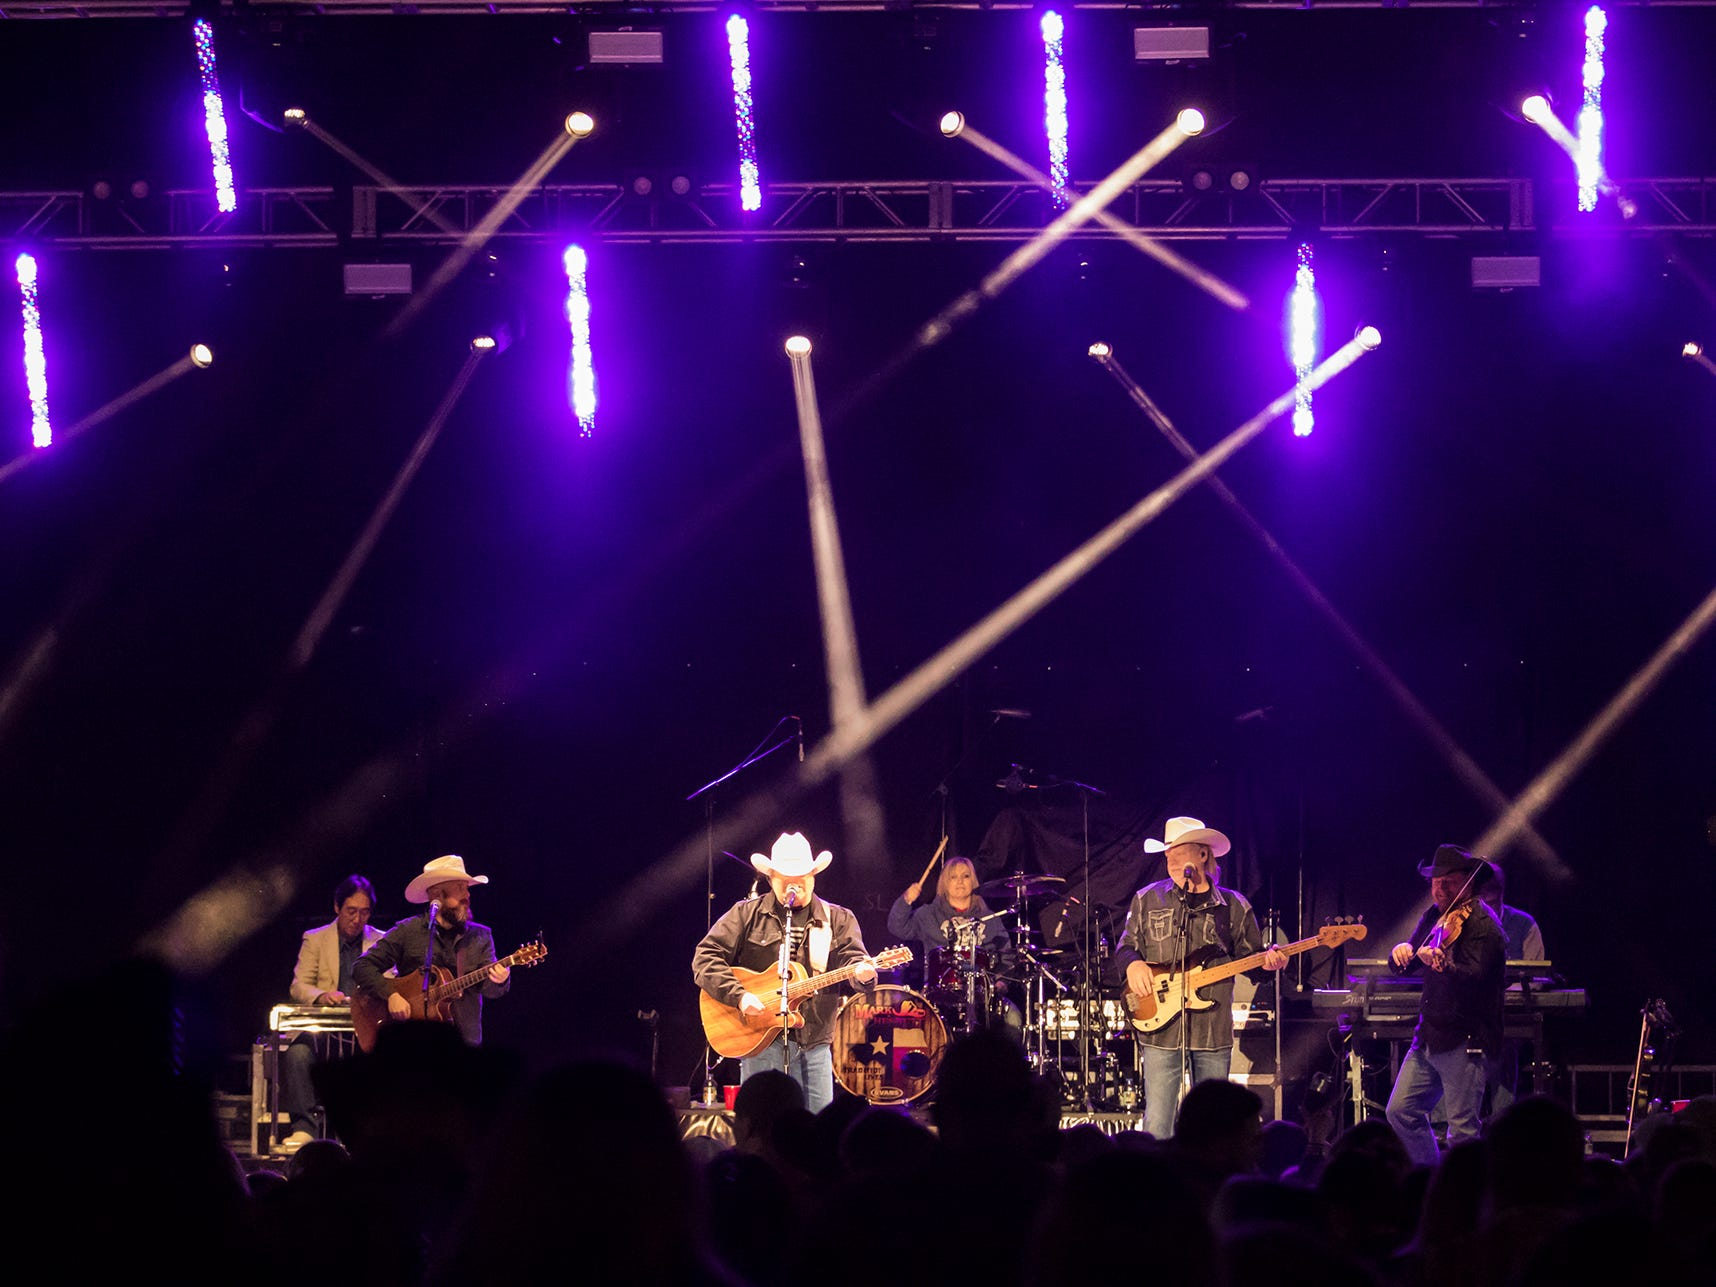 Thousands turned out for country music festival Bayou Stock on Nov. 17 in Sterlington. The event was founded by Bastrop native Dylan Scott.